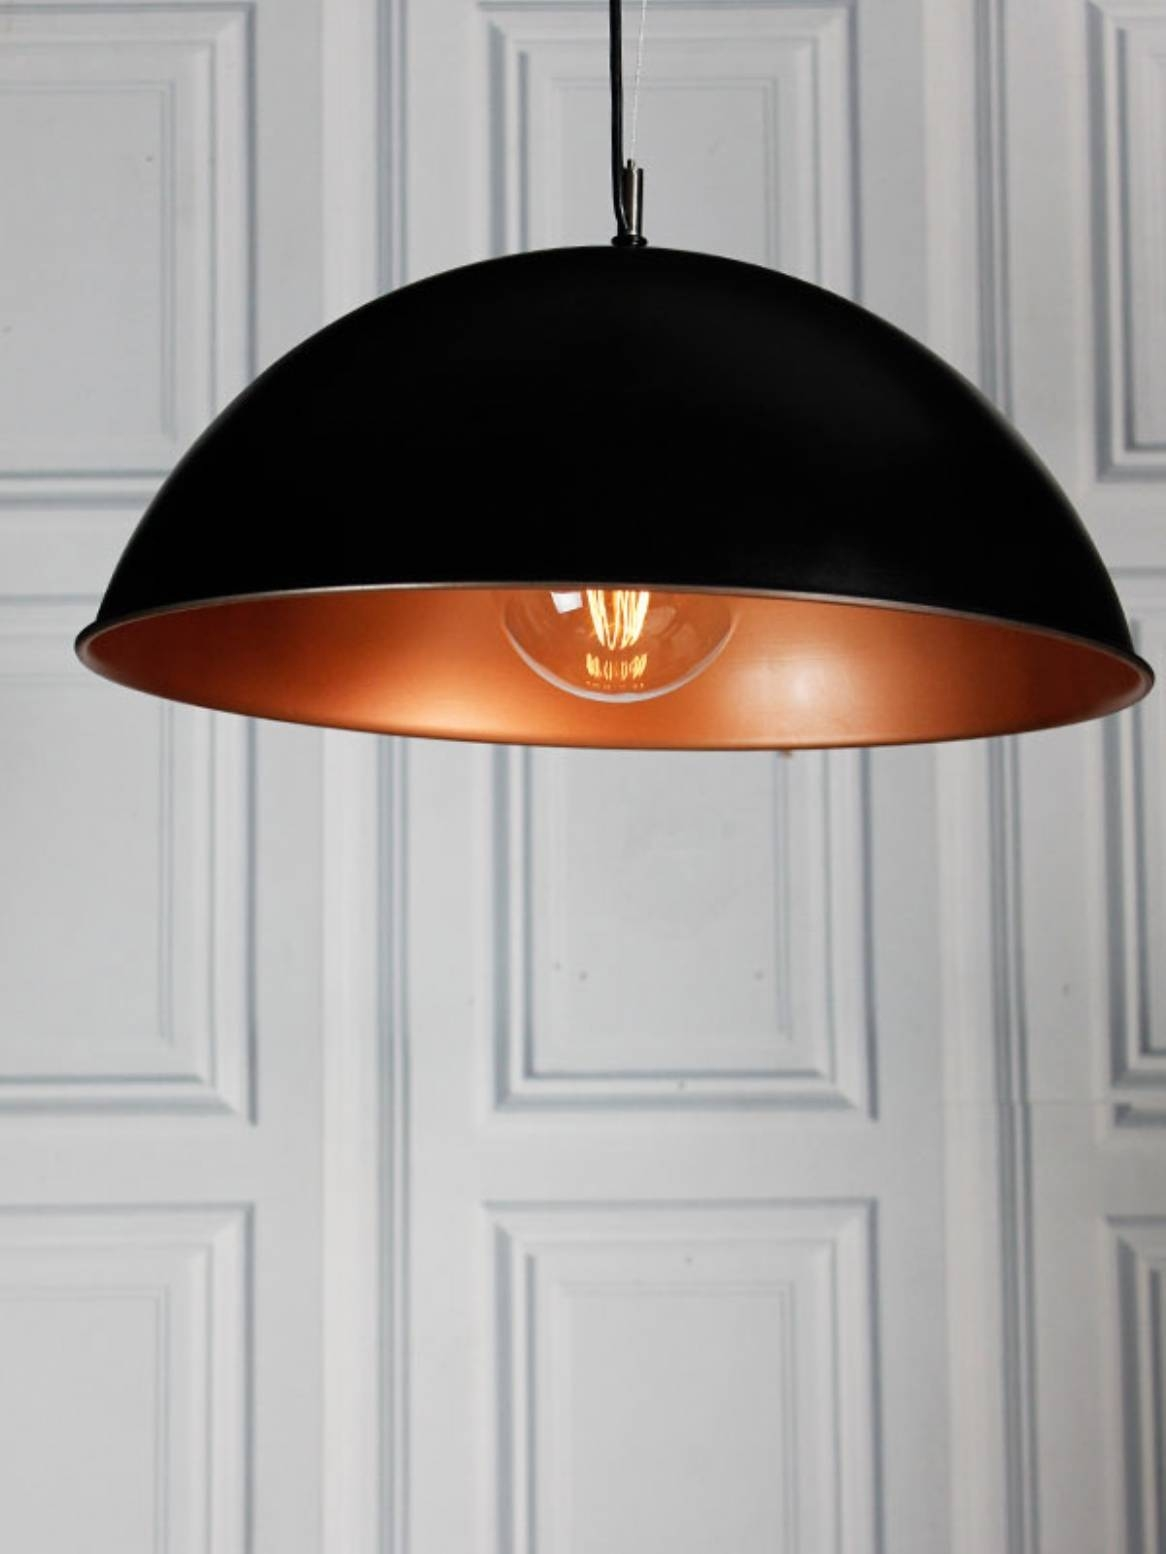 Black And Copper Dome Pendant Light for Large Dome Pendant Lights (Image 2 of 15)